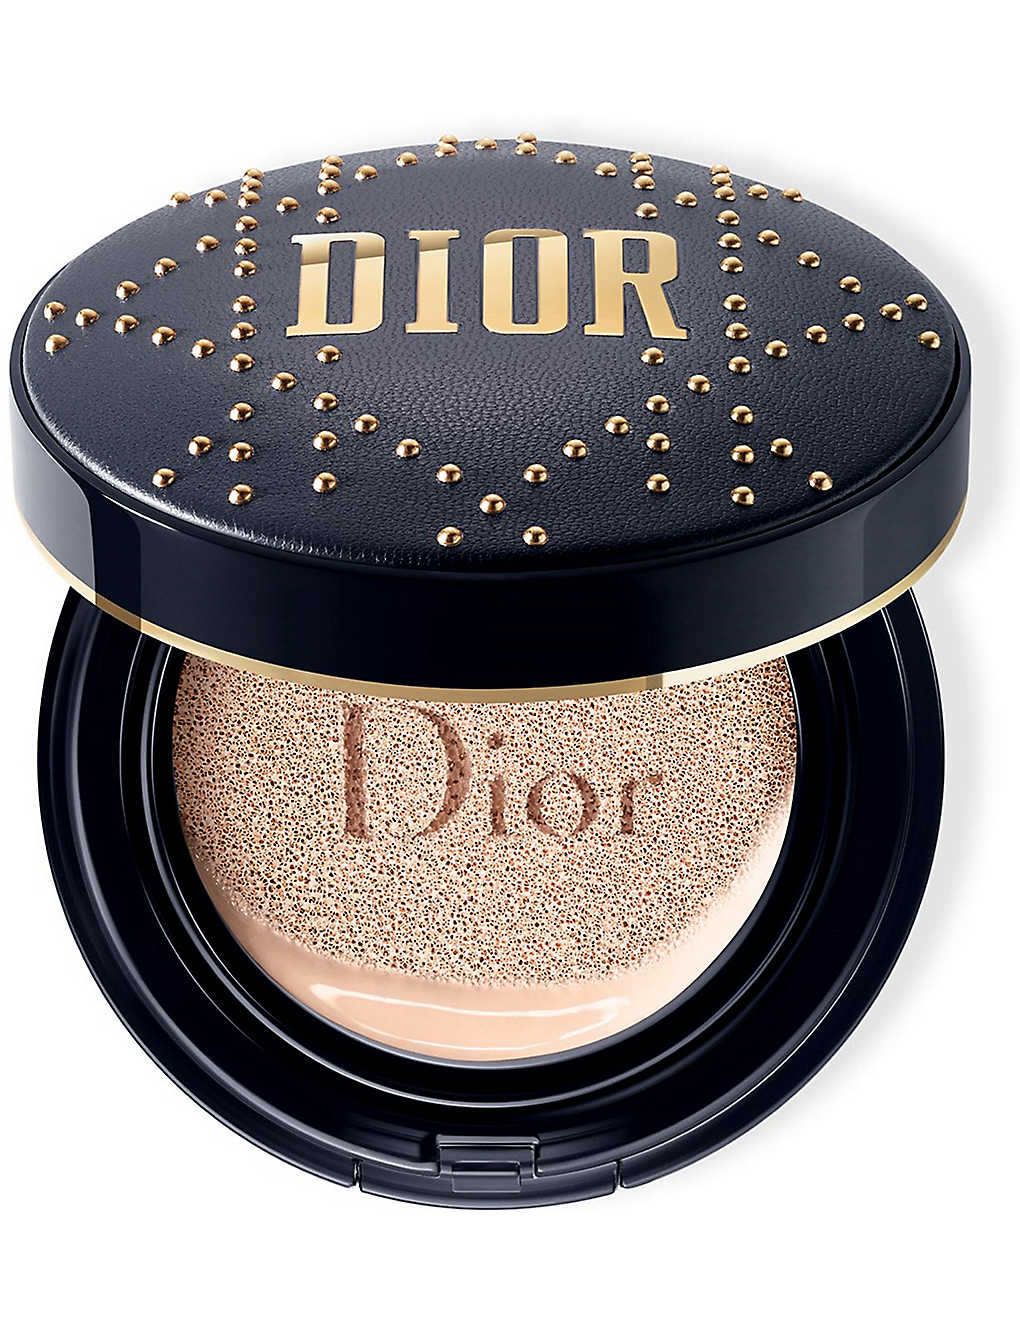 DIOR: Diorskin Forever Perfect Cushion Foundation 15g